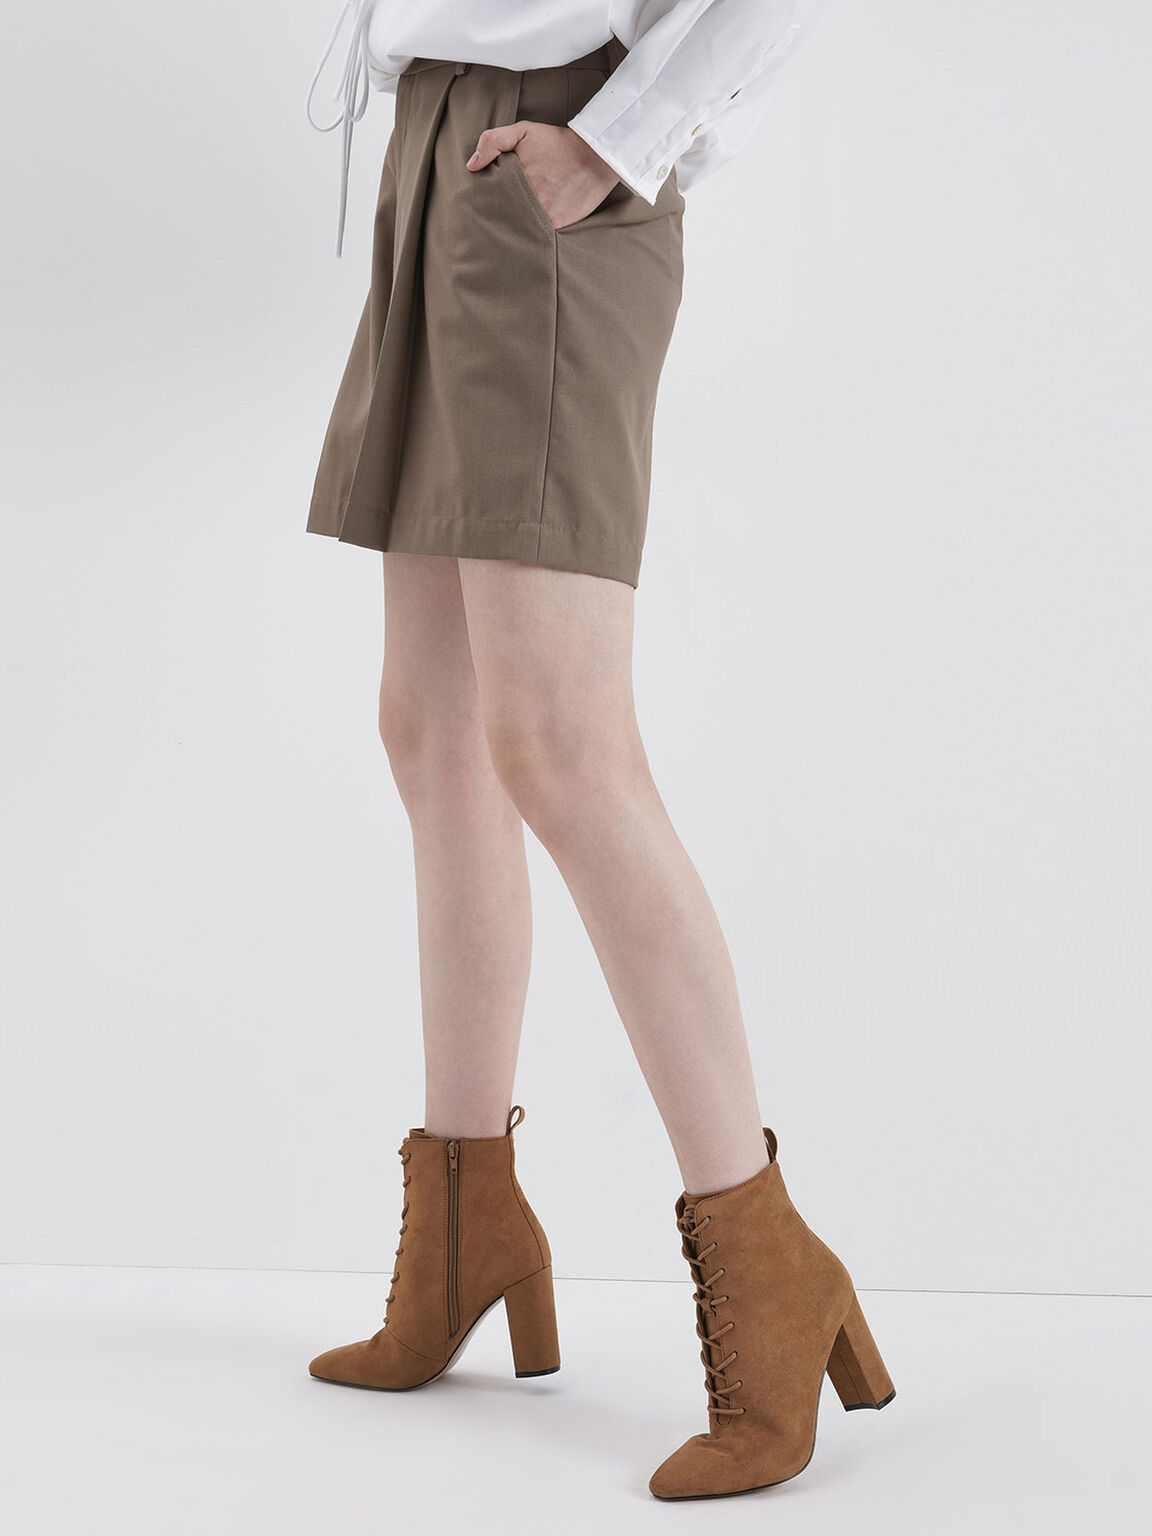 Textured Lace-Up Ankle Boots, Caramel, hi-res